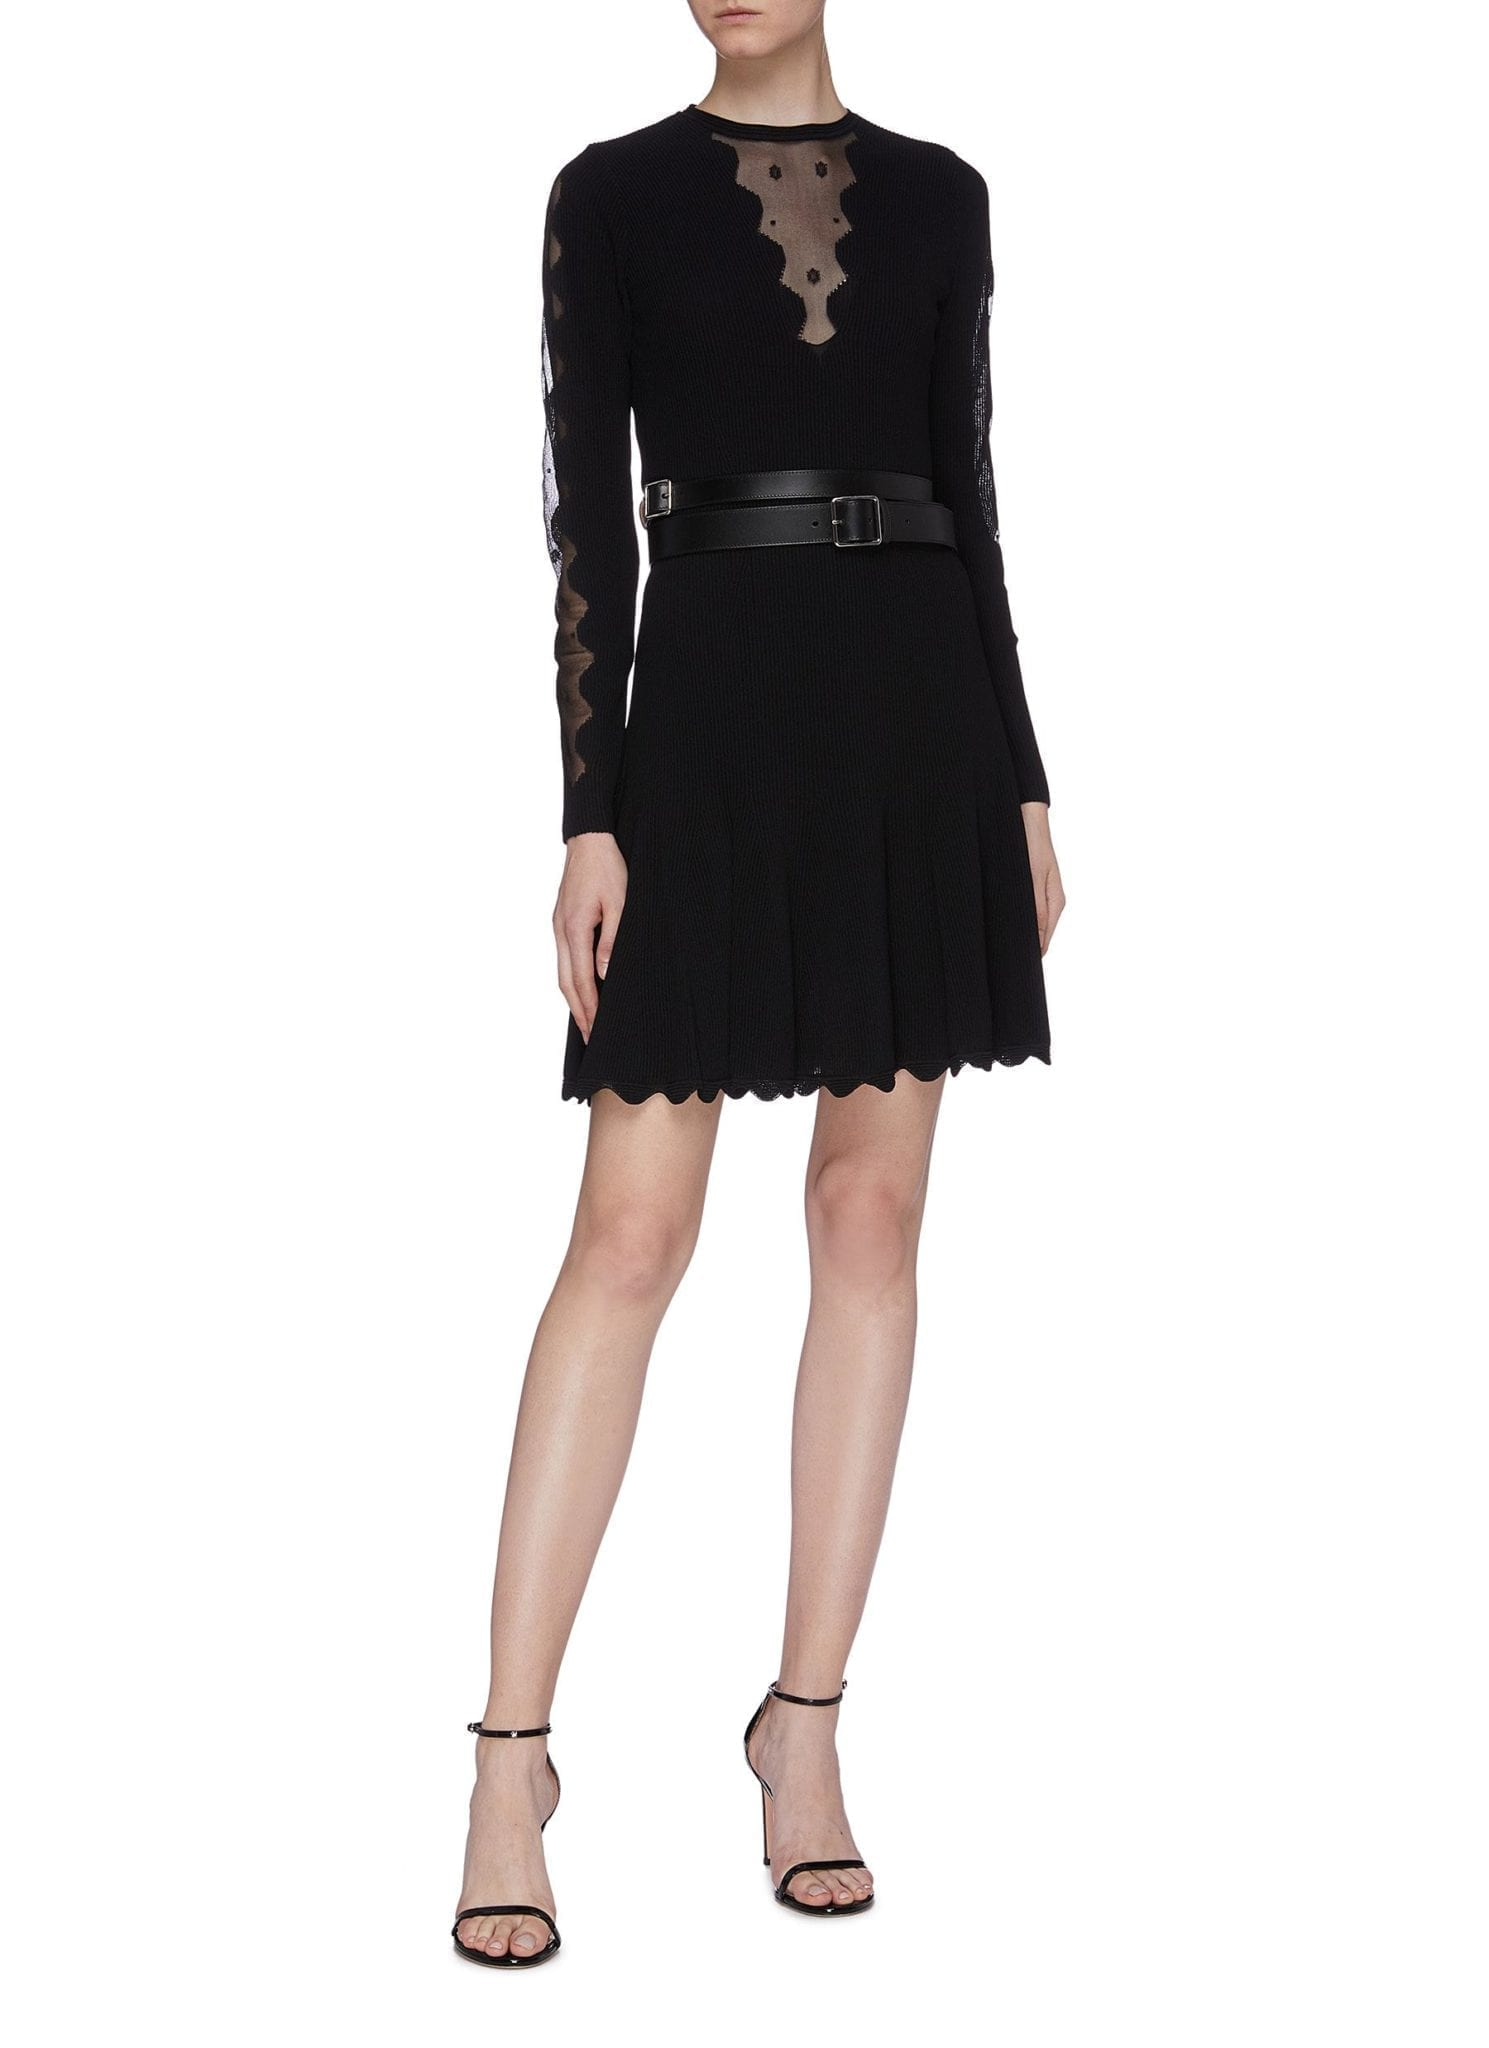 ALEXANDER MCQUEEN Scalloped Mesh Yoke Pleated Hem Rib Knit Dress